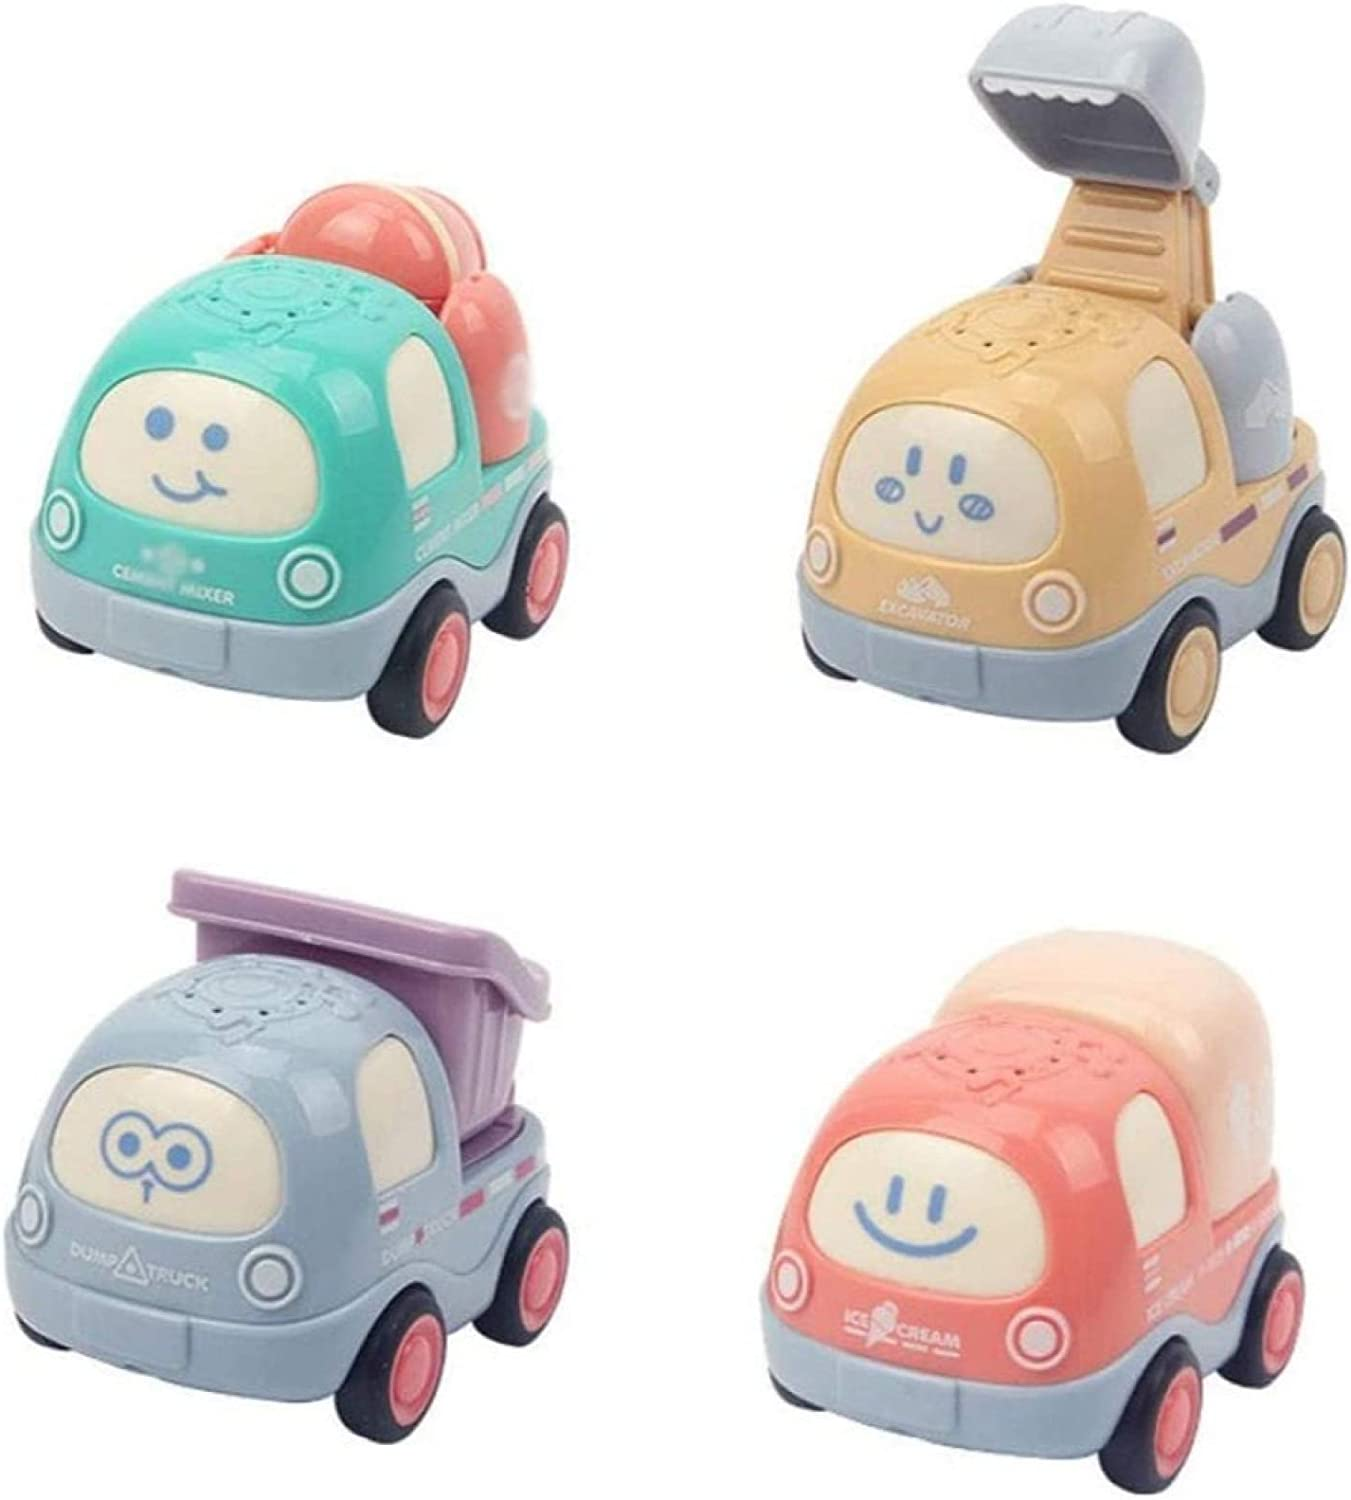 ZHANG Ranking TOP16 Toys Cars Hging Pull Back 3-14 Fric Year Old Popular brand in the world Vehicles Boys